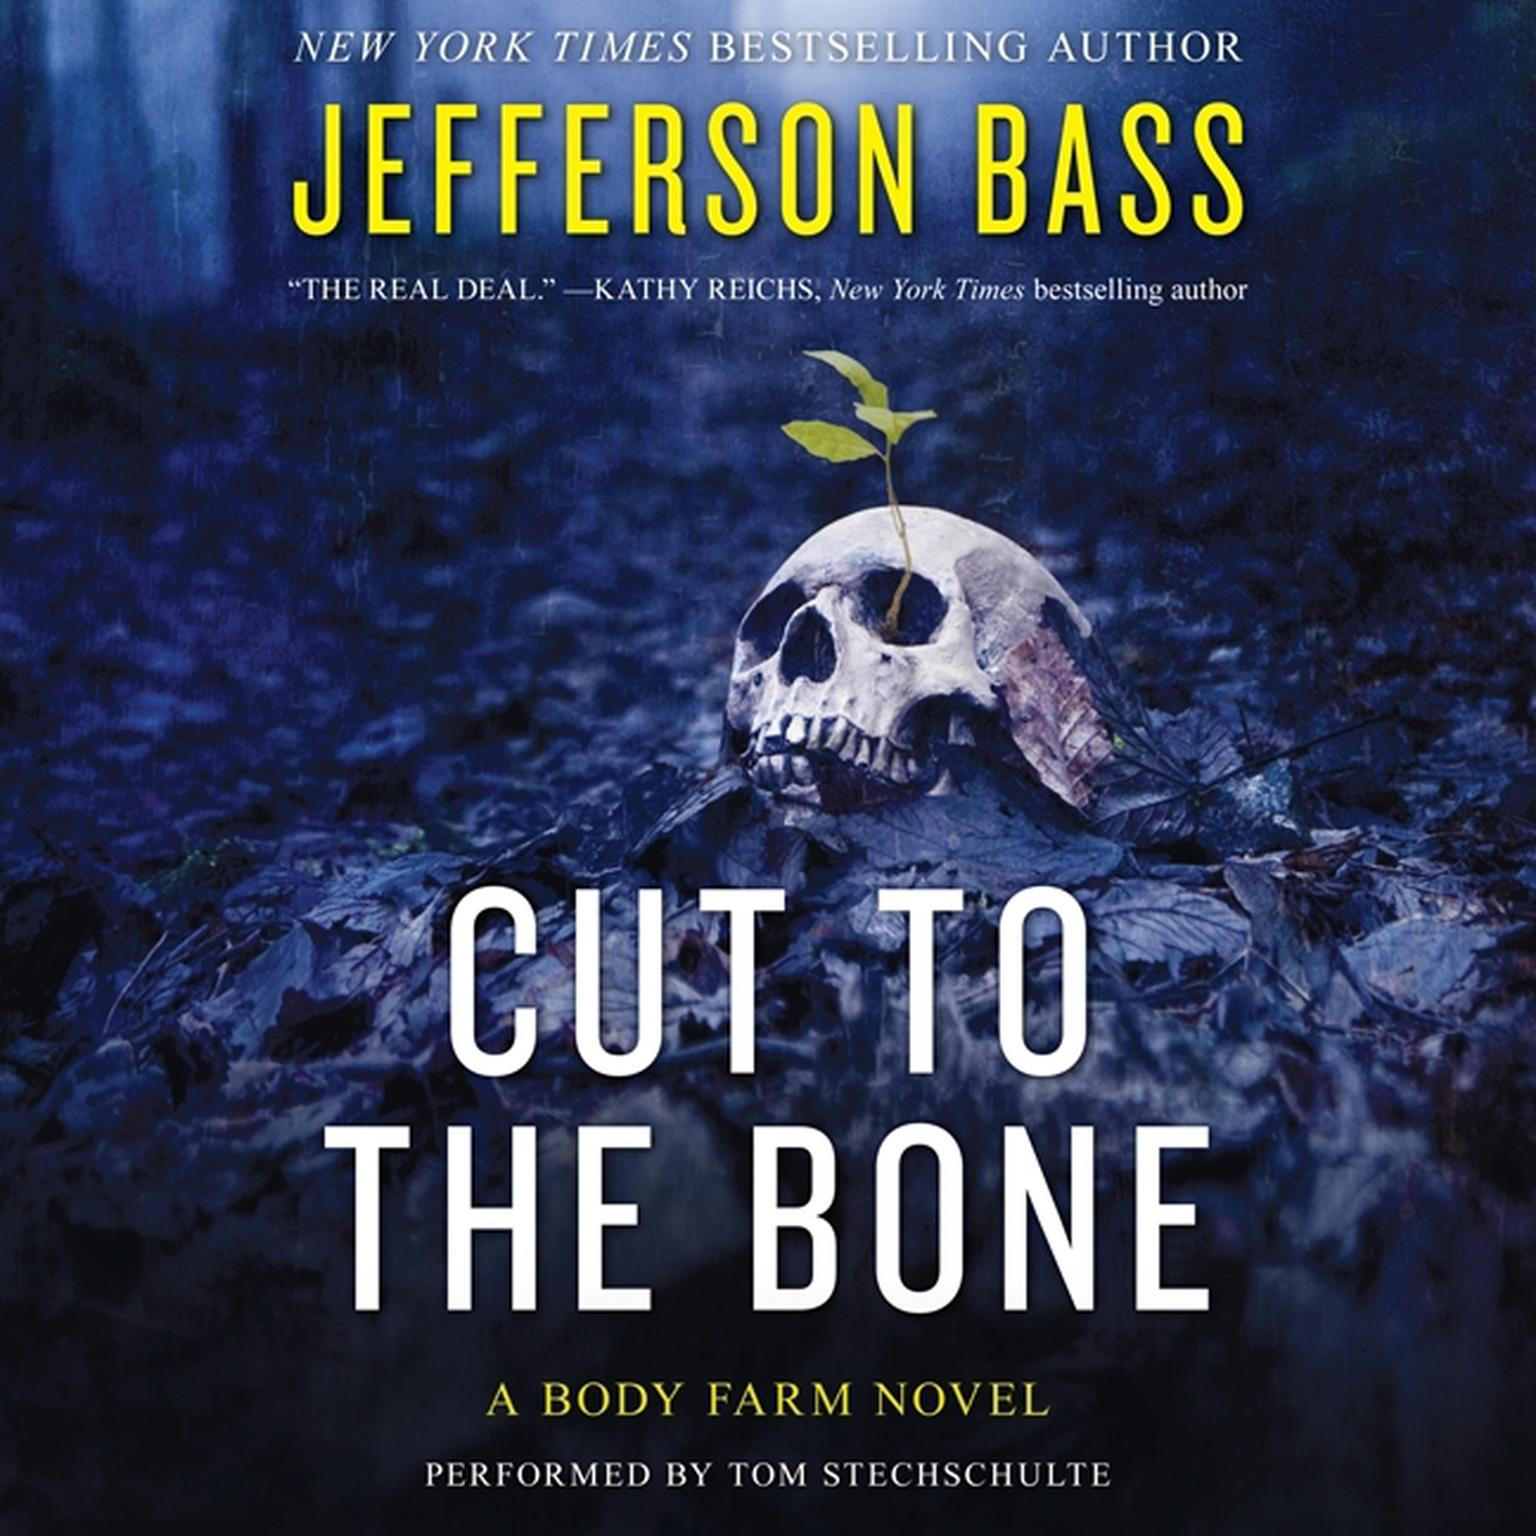 Printable Cut to the Bone: A Body Farm Novel Audiobook Cover Art